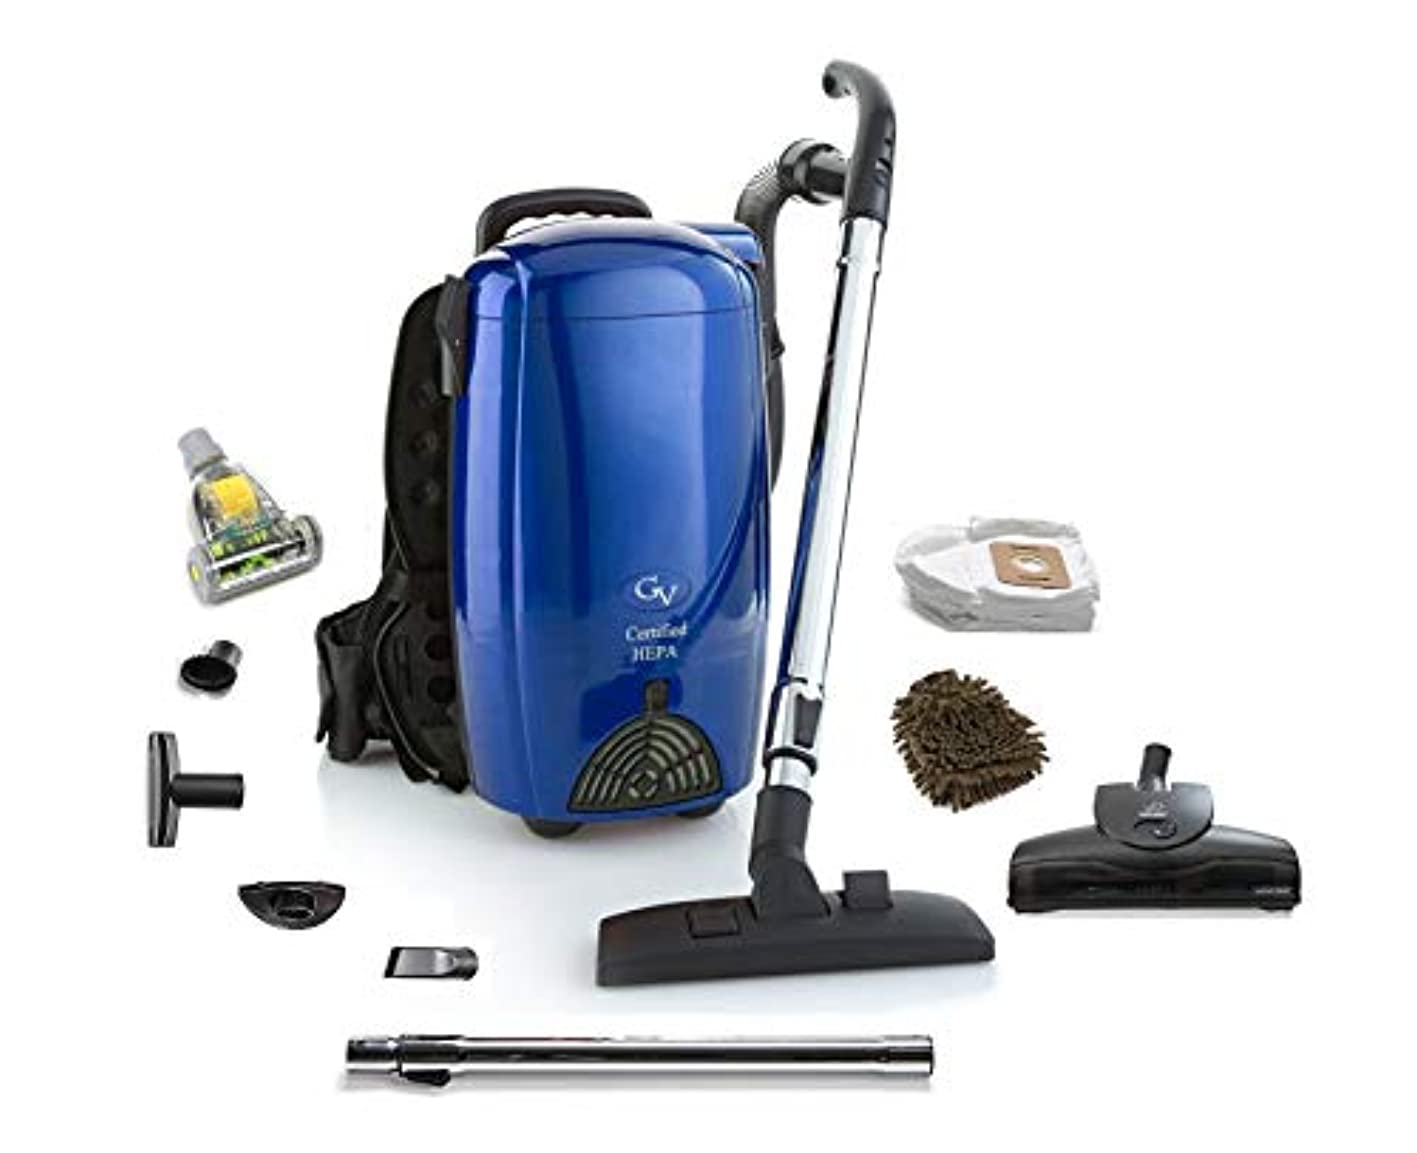 GV Blue 8 Qt Quart HEPA Backpack Vacuum Blower (Complete Set) w/Bonus: Premium Microfiber Cleaner Bundle aahuuswttro956